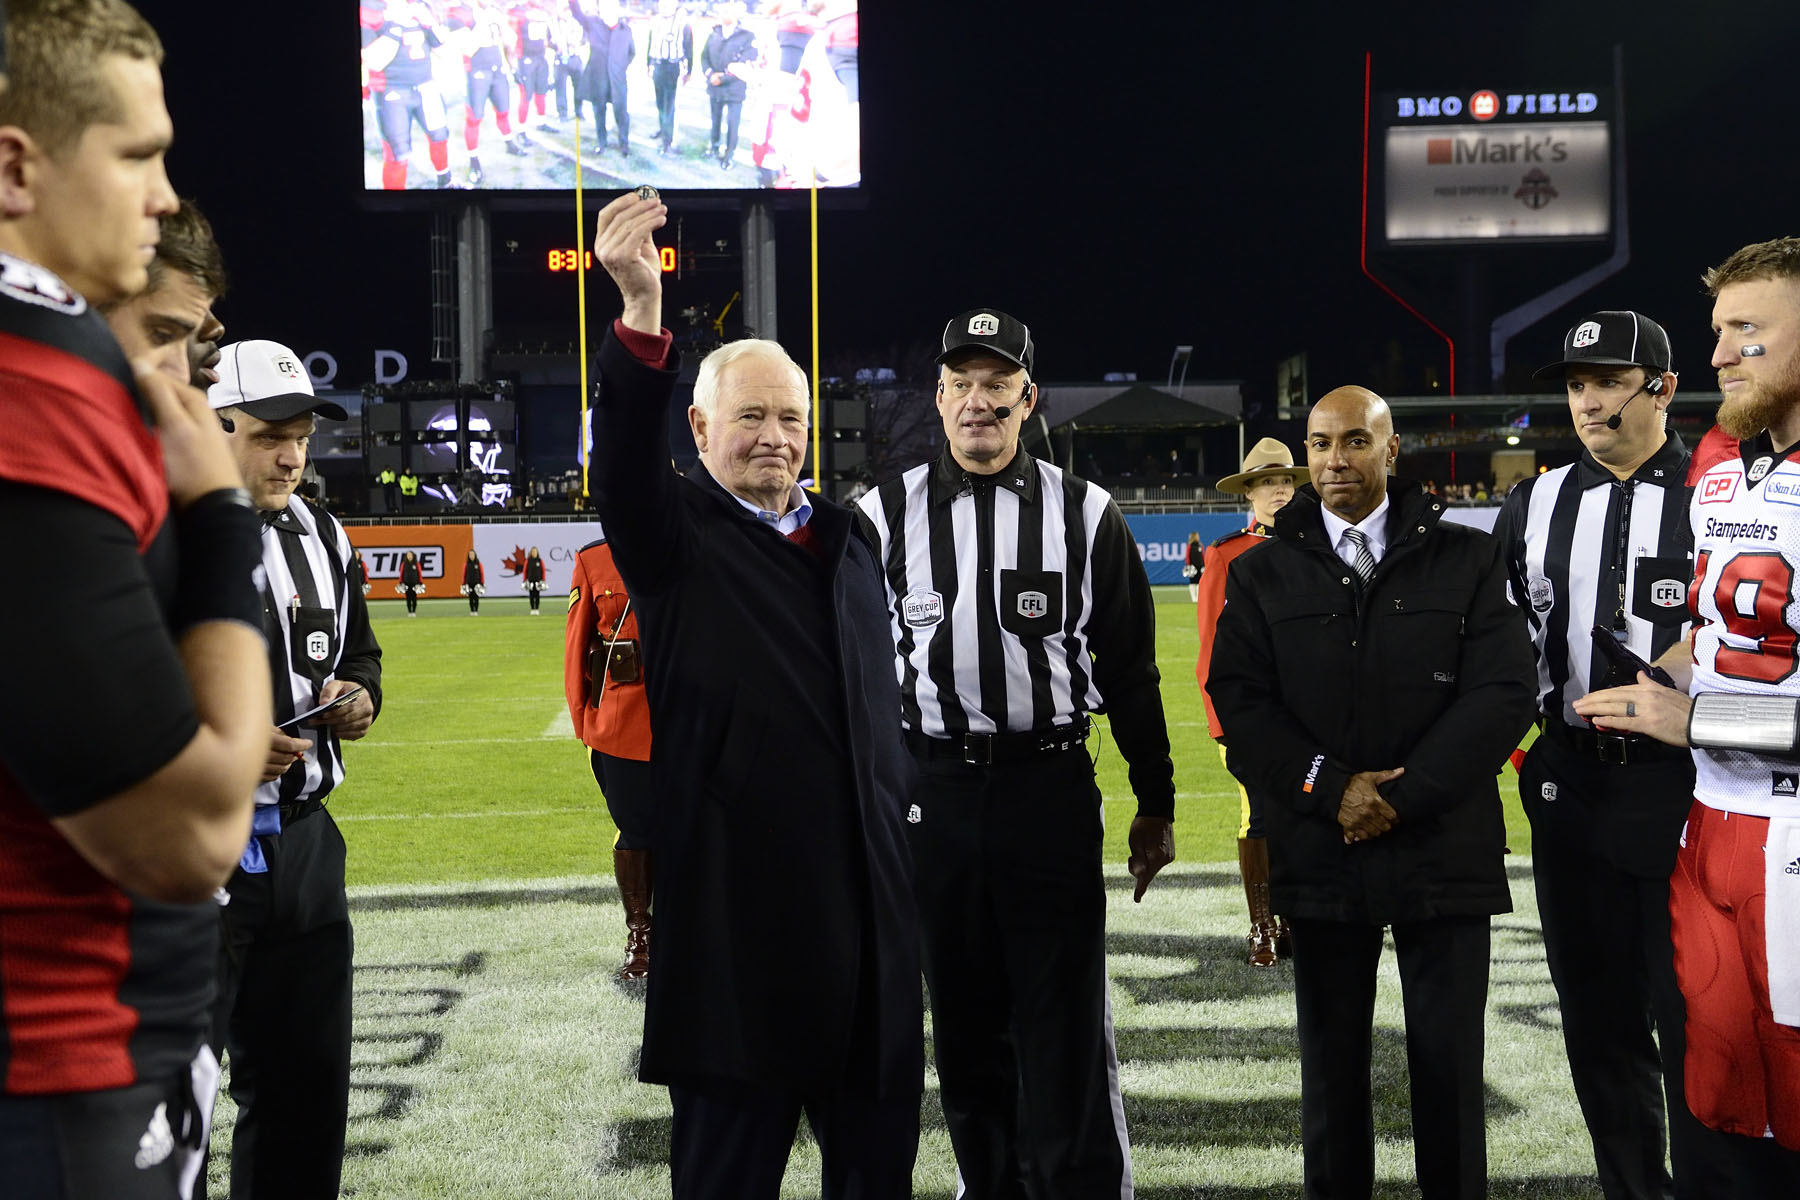 The Governor General conducted the coin toss to officially kick off the championship game between the Ottawa REDBLACKS and the Calgary Stampeders.